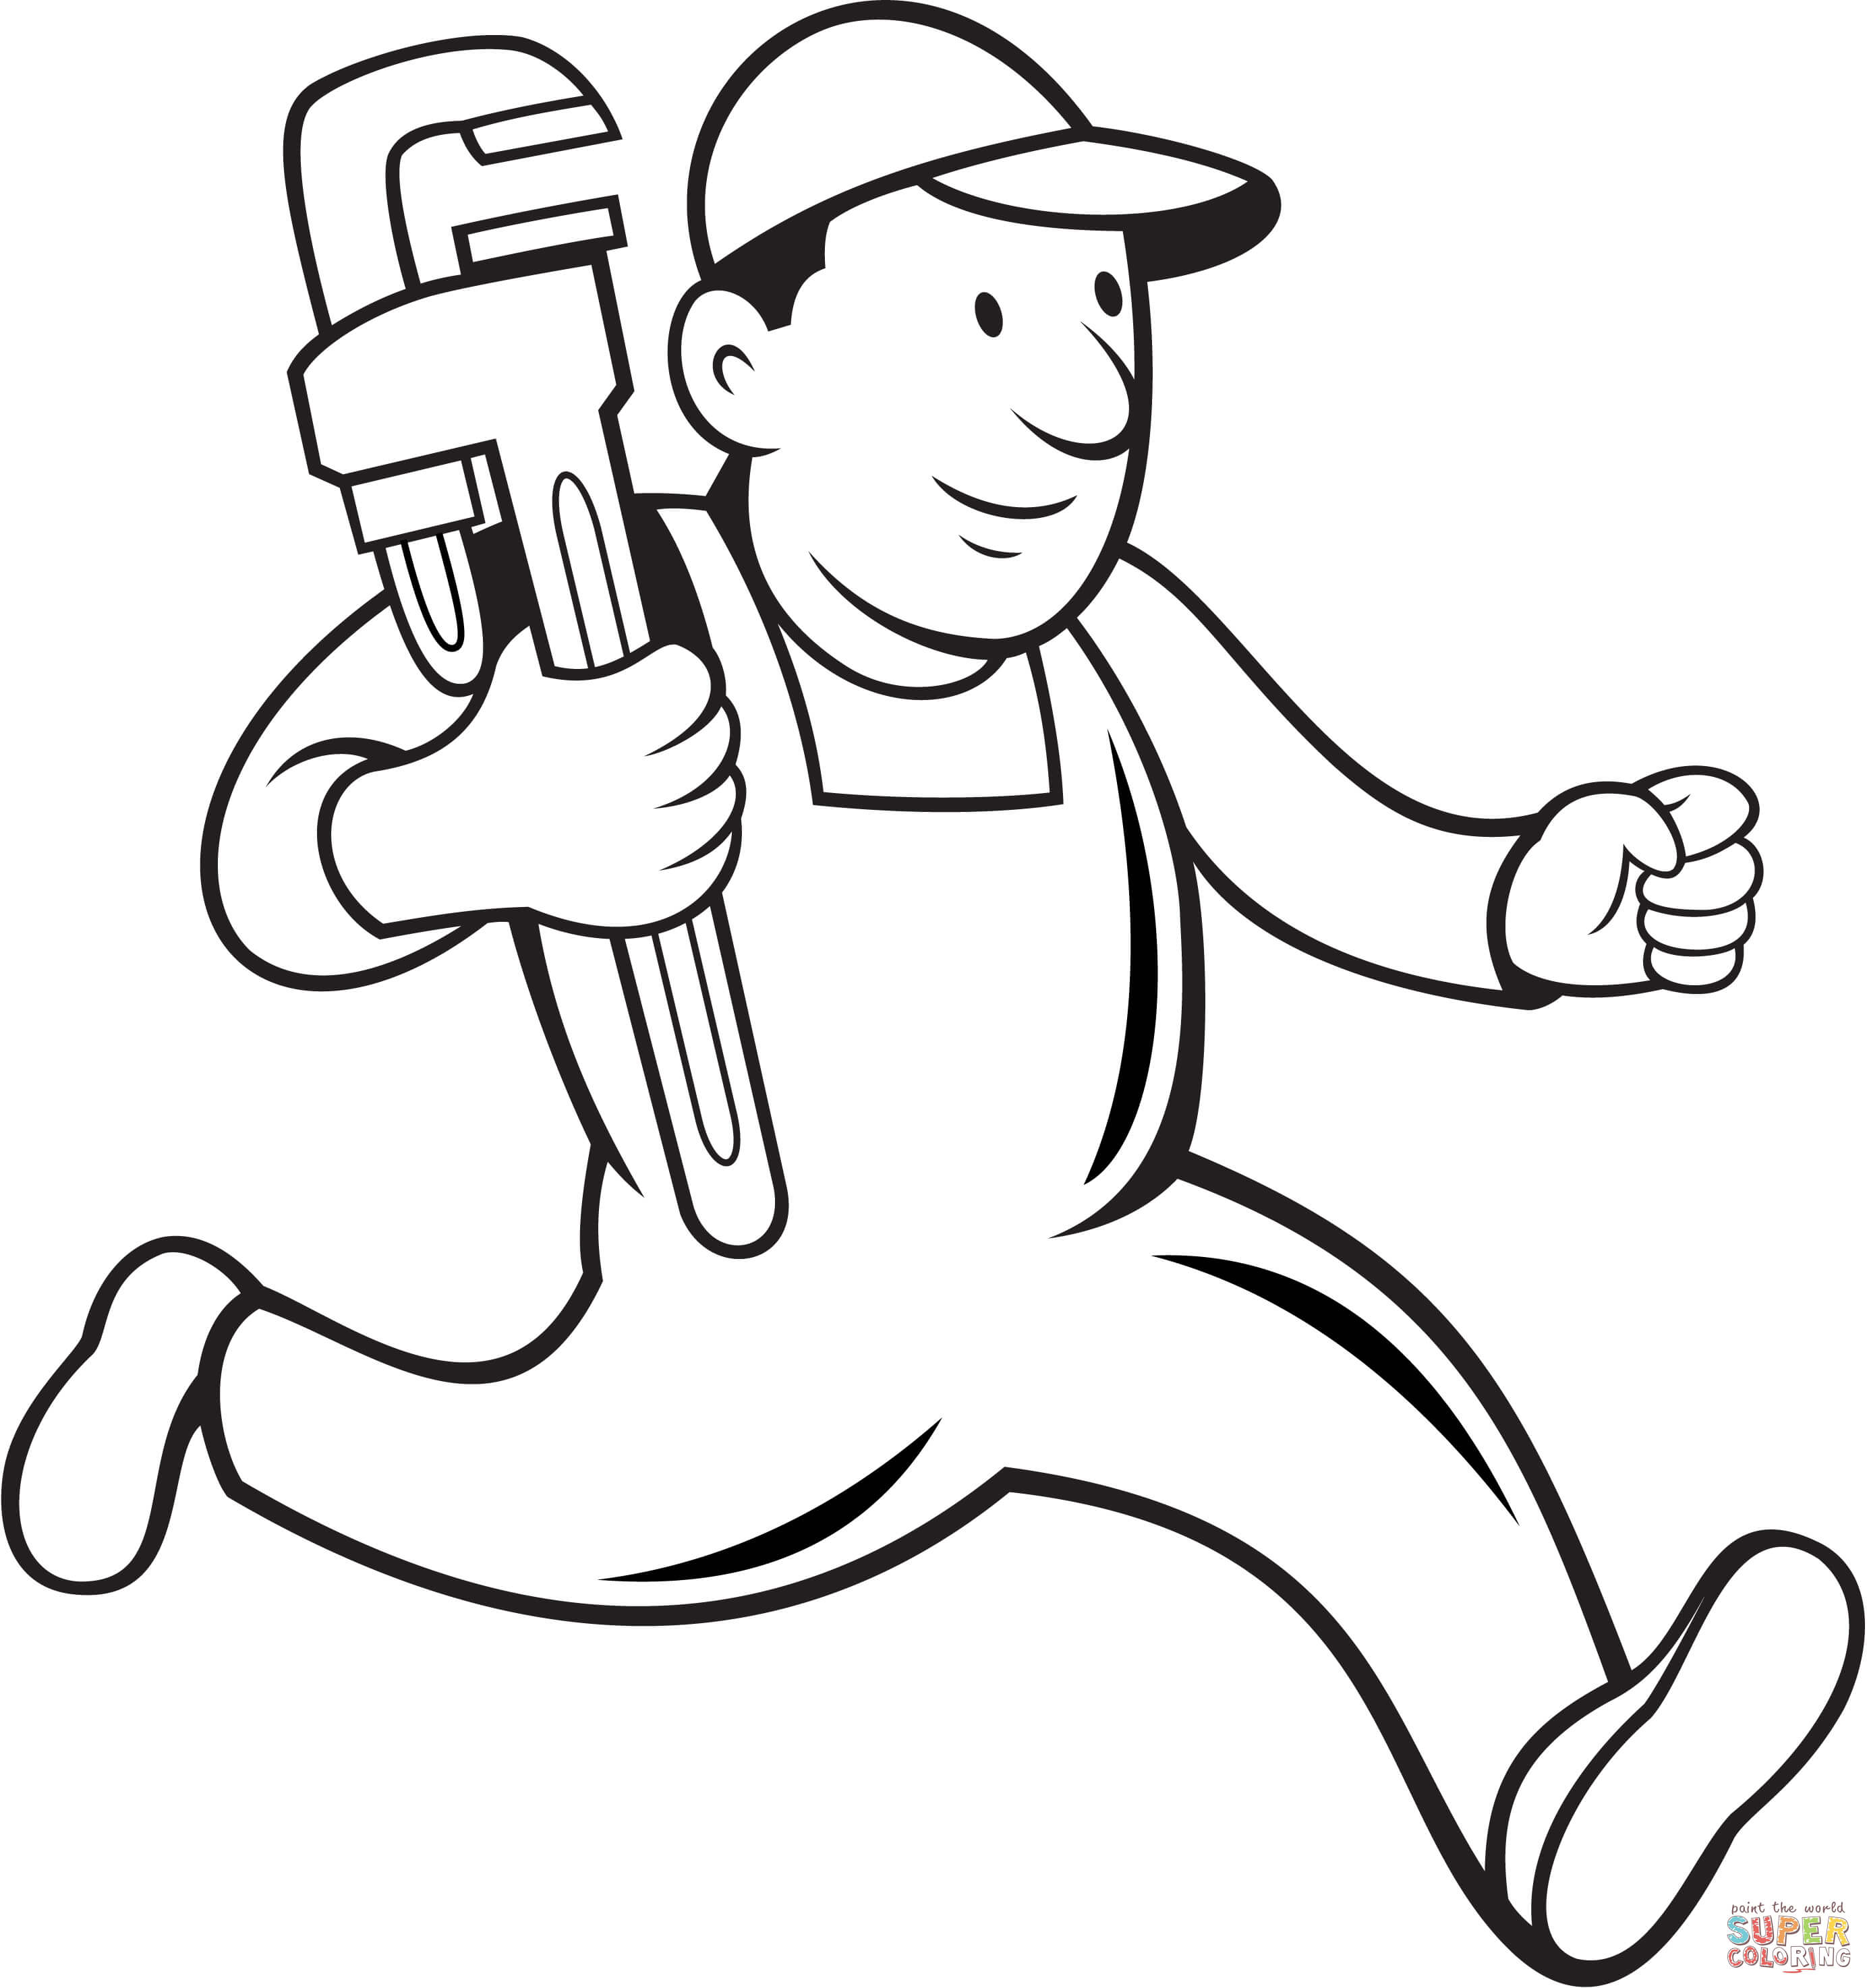 Plumber Running To Help Coloring Page